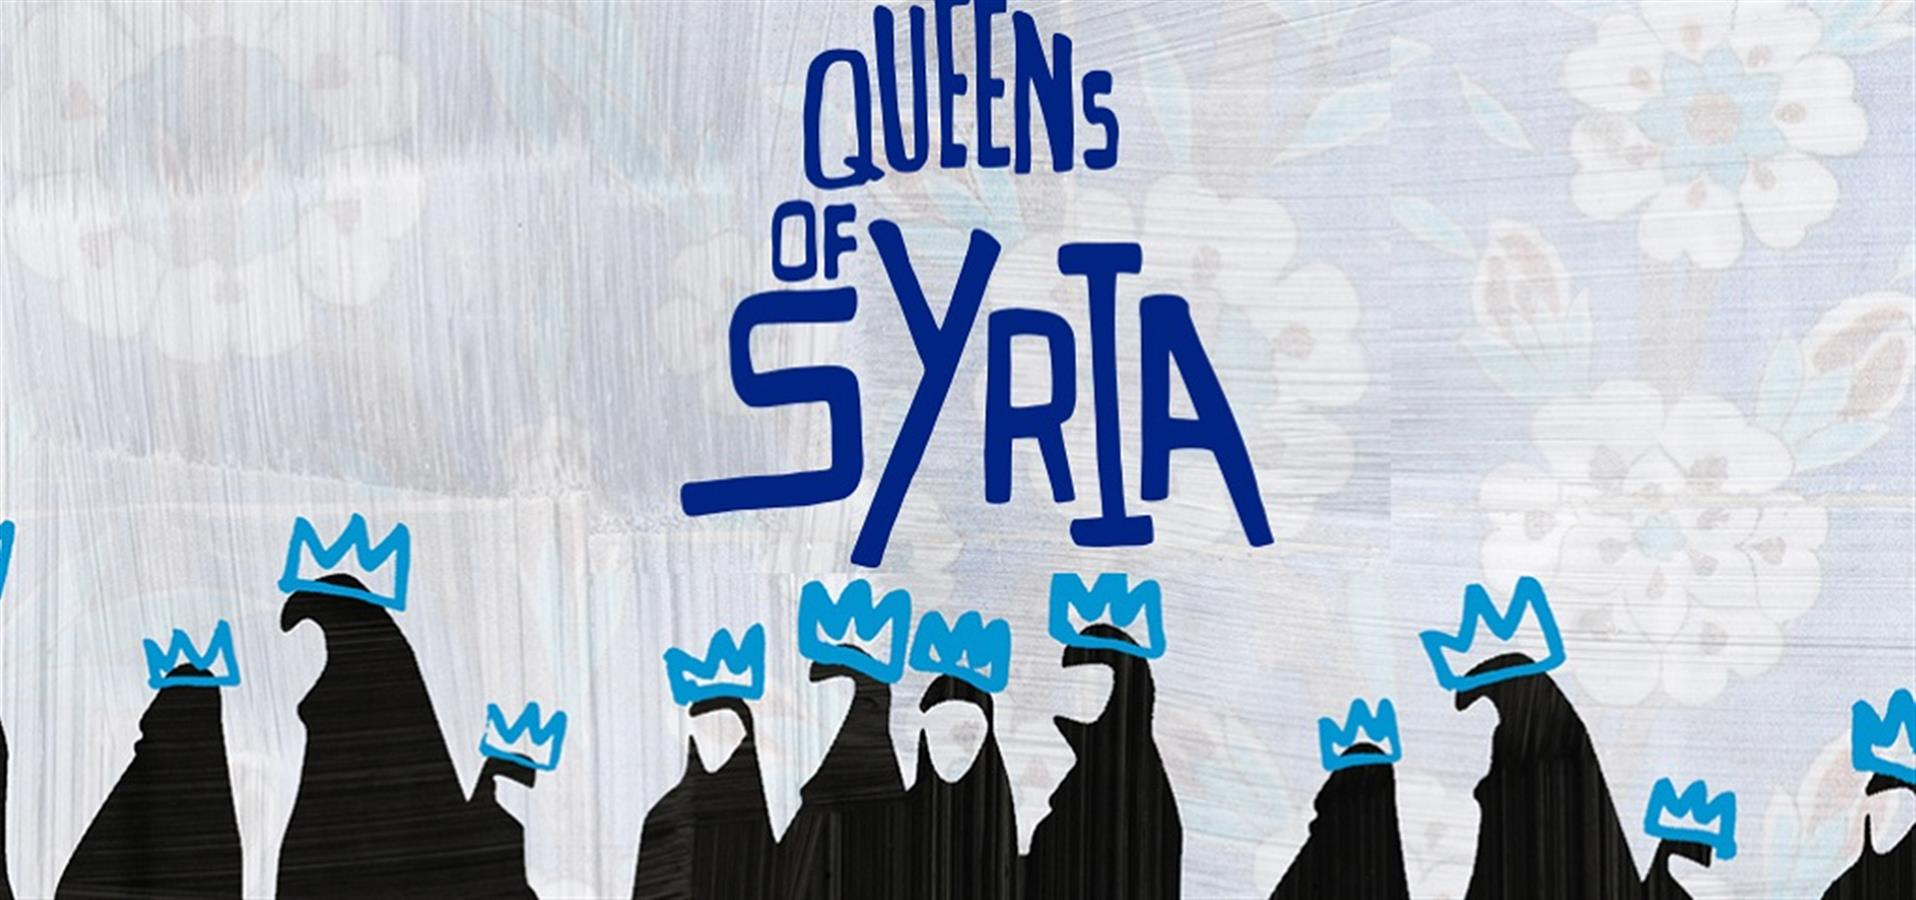 Queens-of-Syria-9456